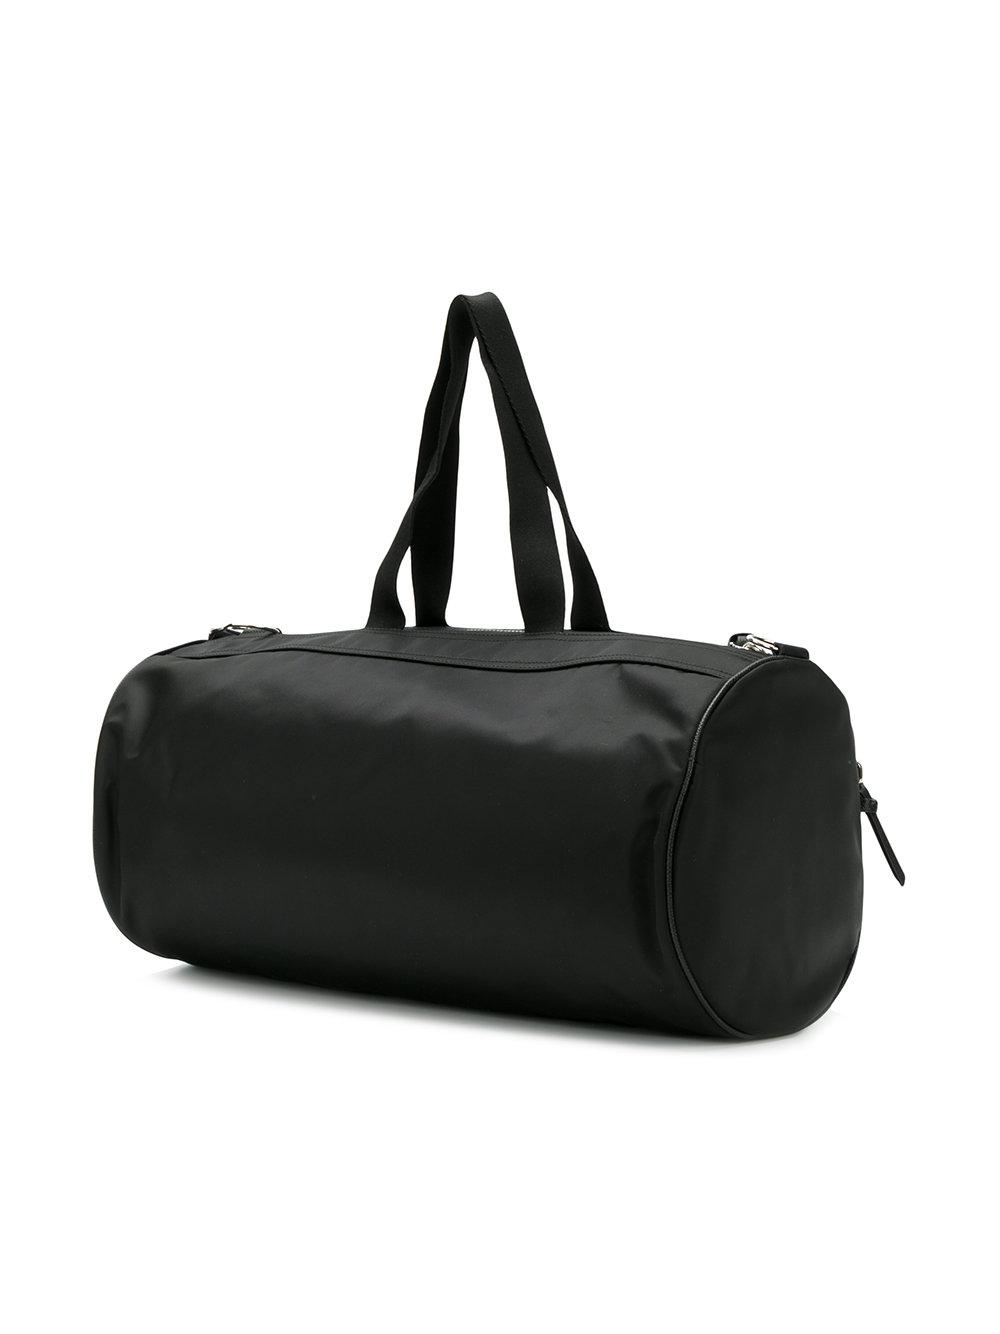 1696744694 Lyst - Givenchy Paris Duffle Bag in Black for Men